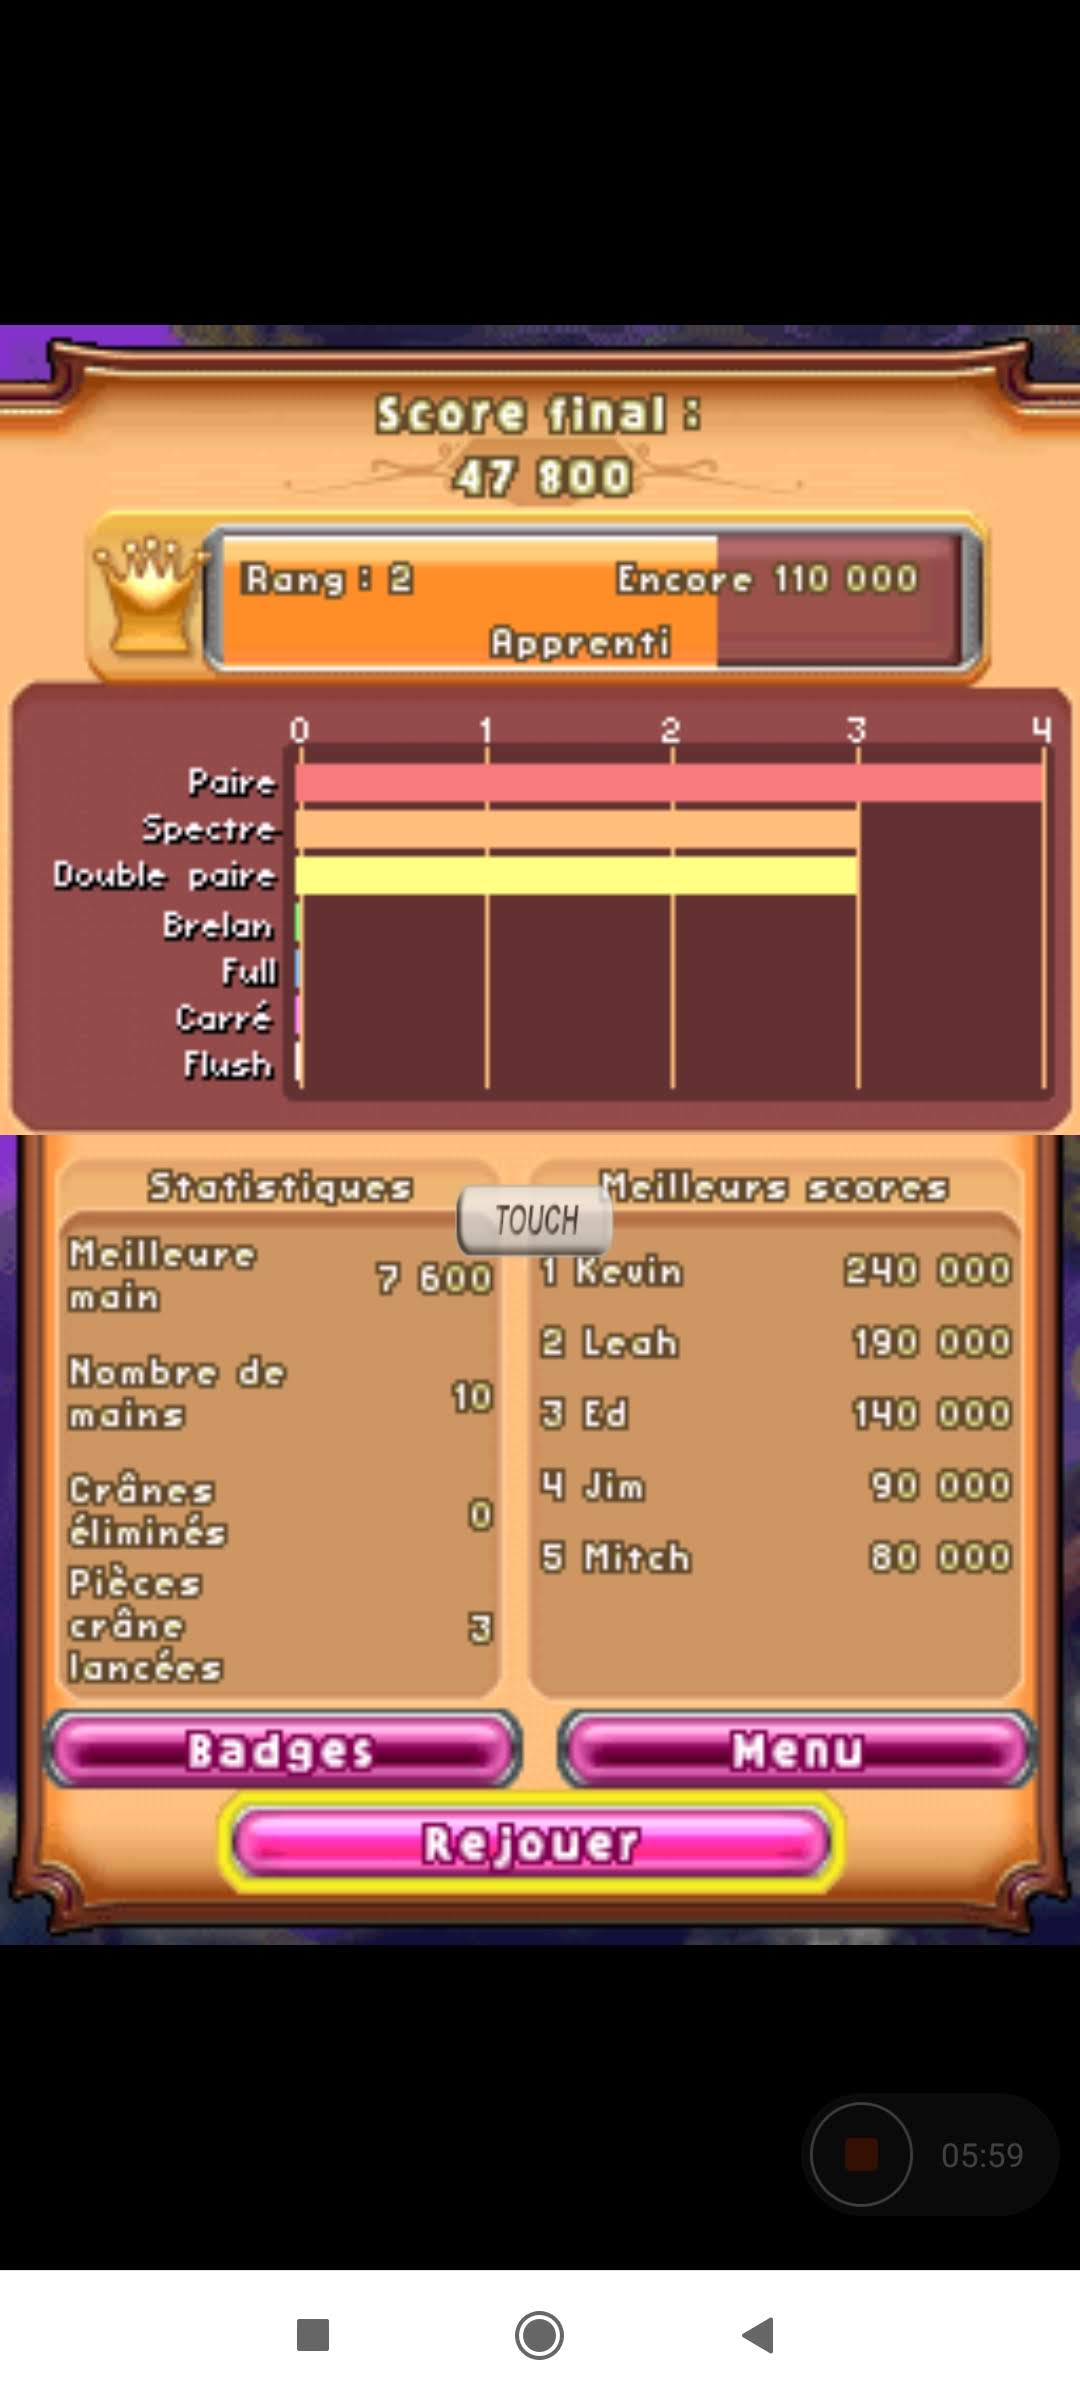 Larquey: Bejeweled 3: Poker [Number of Hands] (Nintendo DS Emulated) 10 points on 2020-09-26 03:15:39